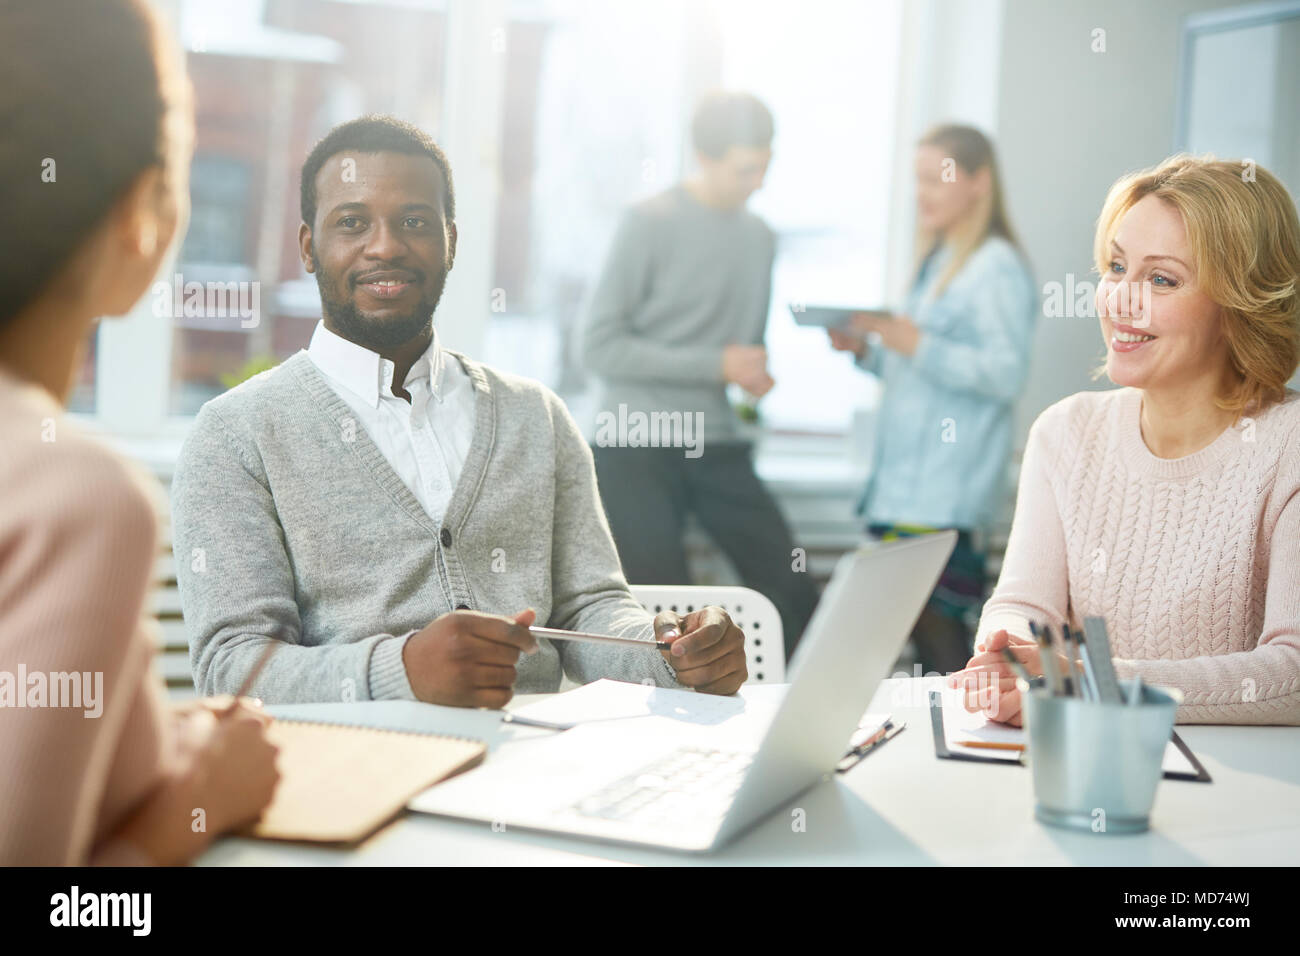 Multi-ethnic team of talented designers gathered together at spacious open plan office and brainstorming on ambitious joint project - Stock Image